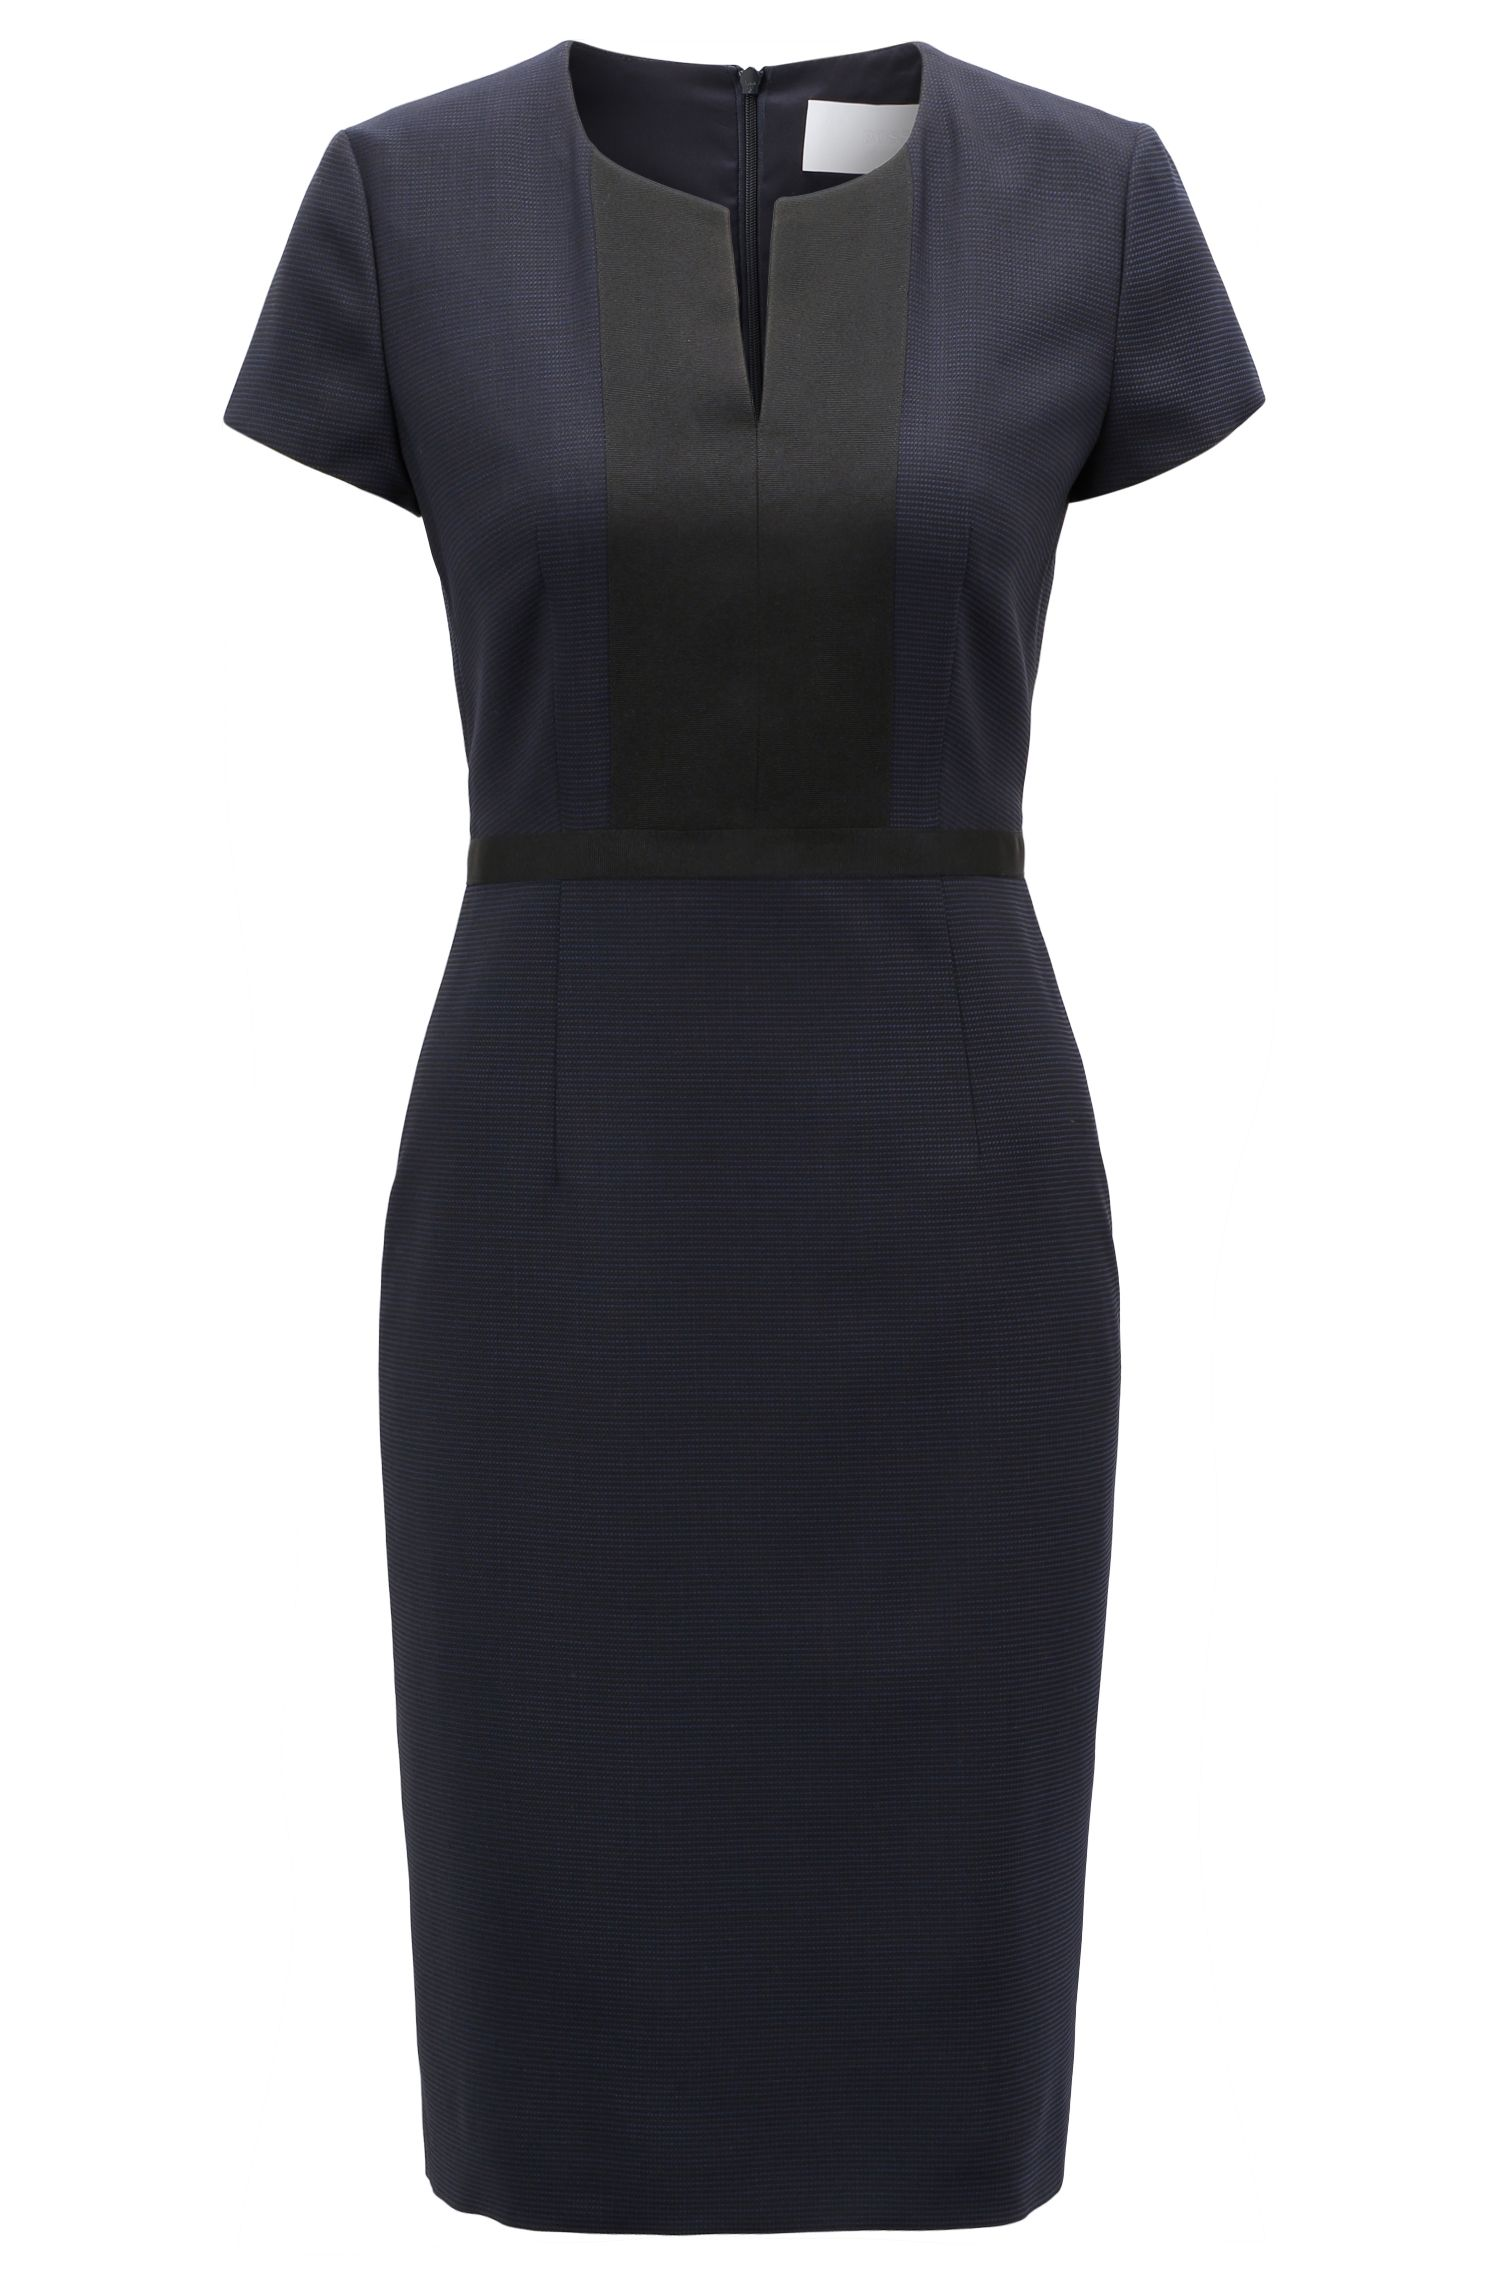 Shift dress in Italian stretch wool with notch neckline, Patterned